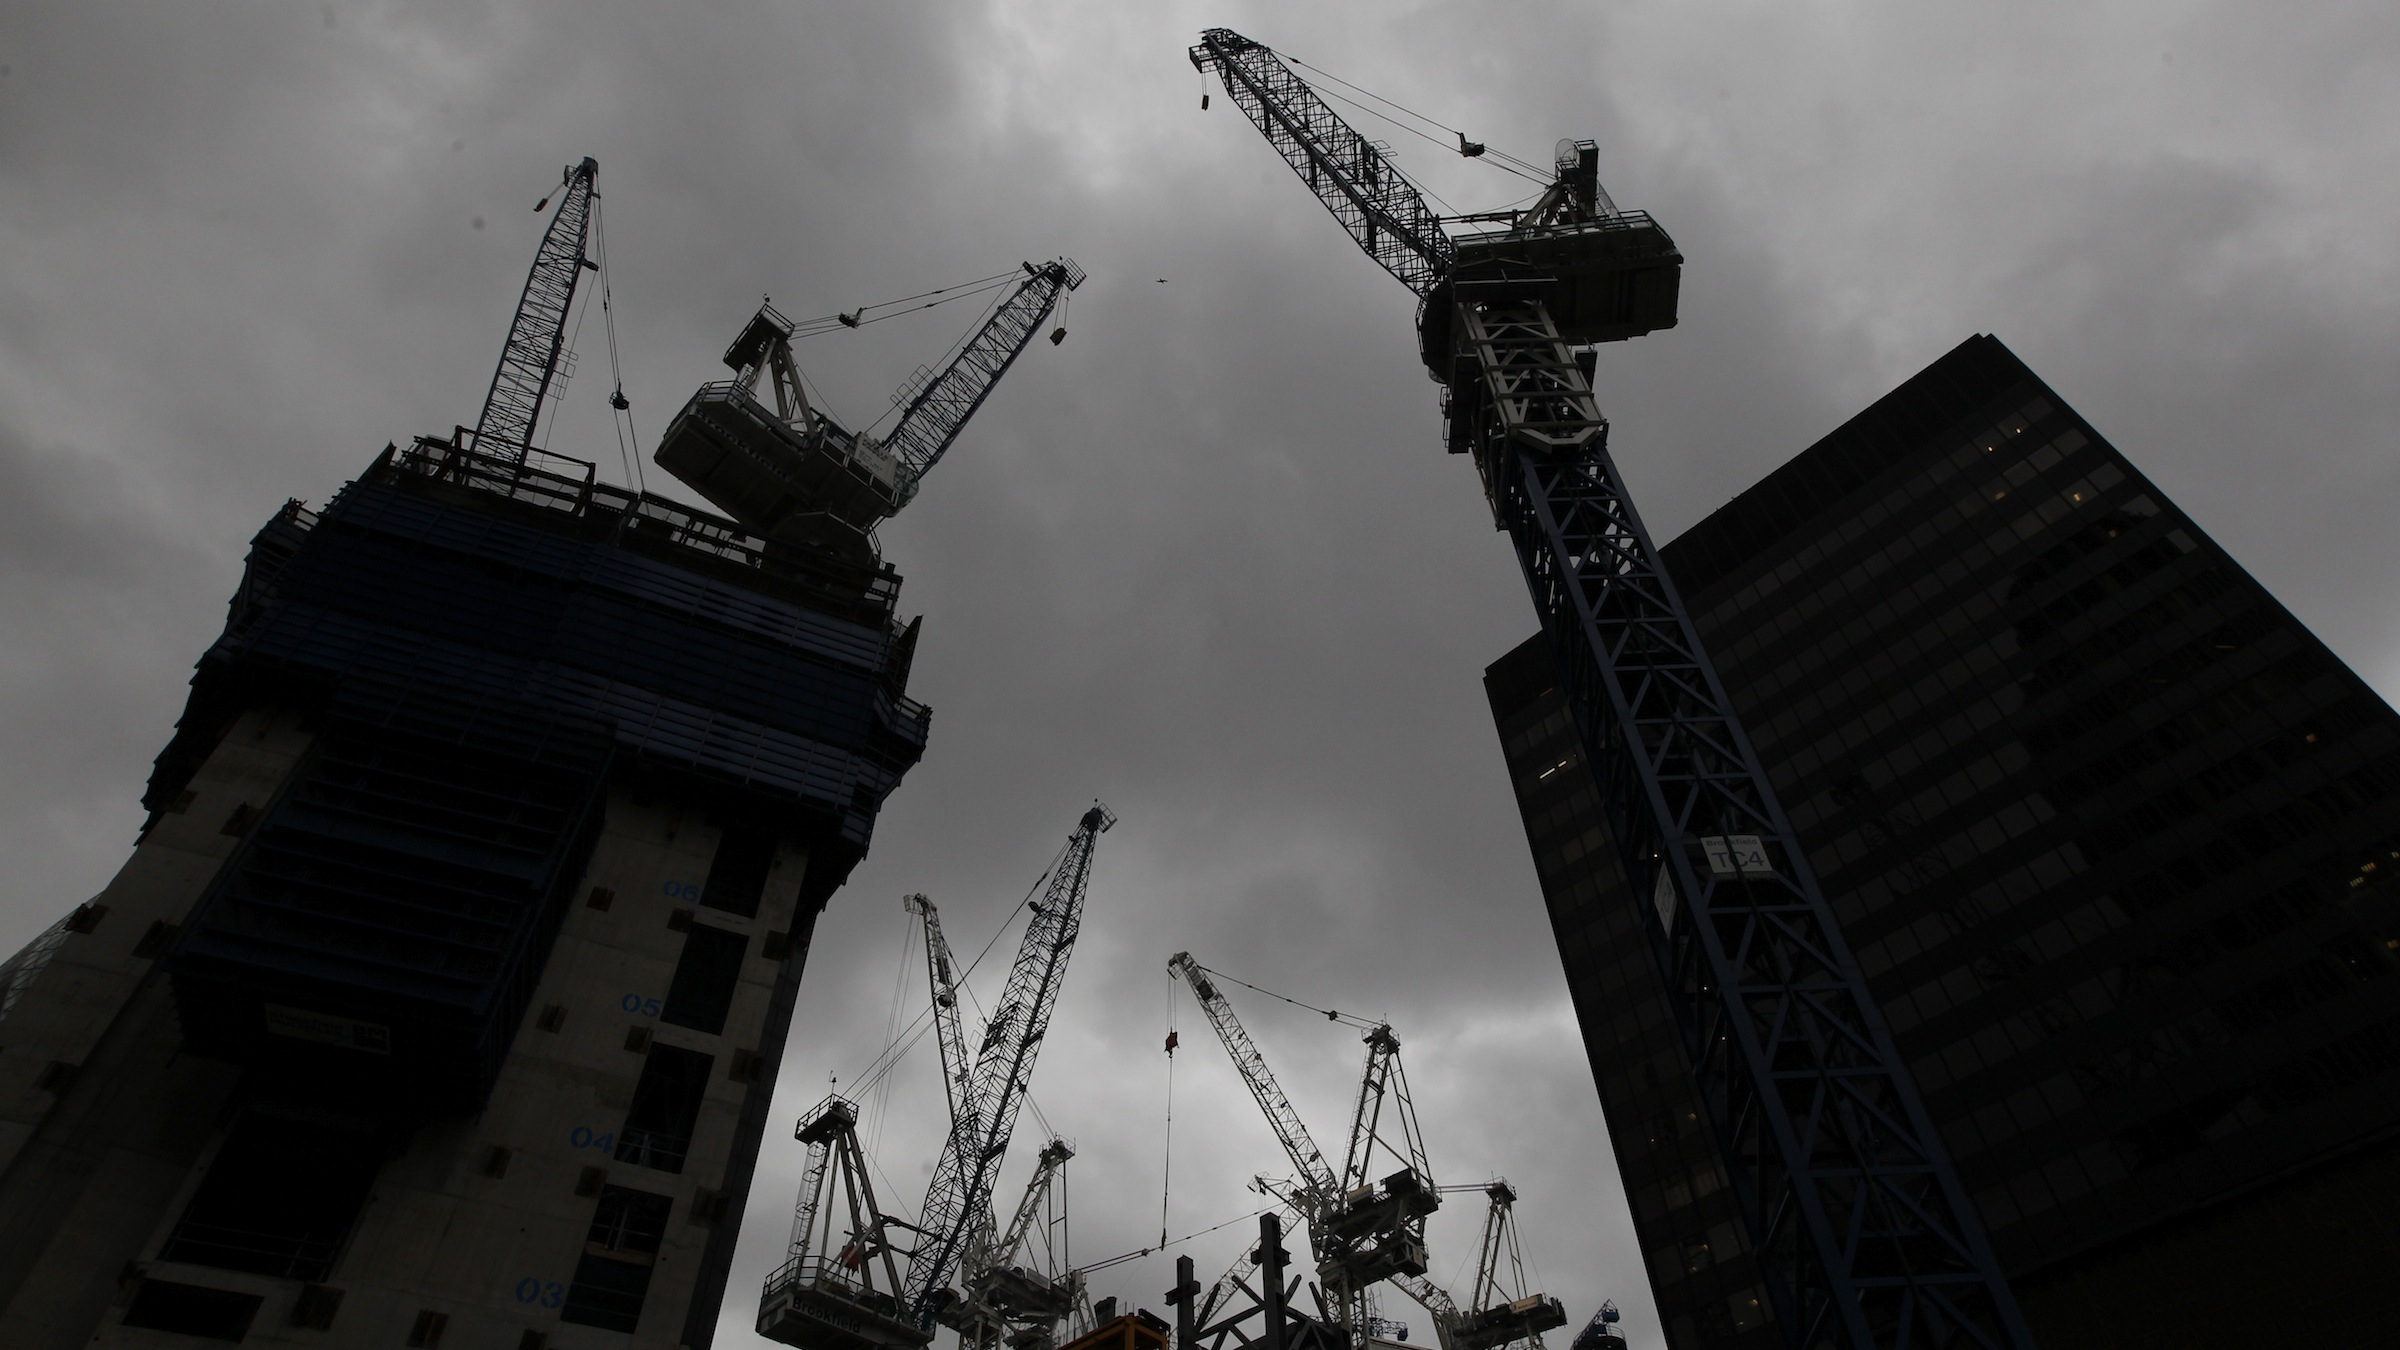 Construction cranes of new buildings are seen in London's City financial district, Friday, June 29, 2012. Britain's financial regulator says the country's four biggest banks have agreed to a settlement for mis-selling interest-rate protection products to small and medium-sized businesses.The Financial Services Authority said Friday that Barclays, HSBC, Lloyds Banking Group and Royal Bank of Scotland have all agreed to provide redress to victims of mis-selling.The FSA says that some 28,000 interest rate protection products have been sold to businesses since 2001. It gave no estimate of how many customers would be entitled to redress, or how much it would cost the banks.(AP Photo/Lefteris Pitarakis)